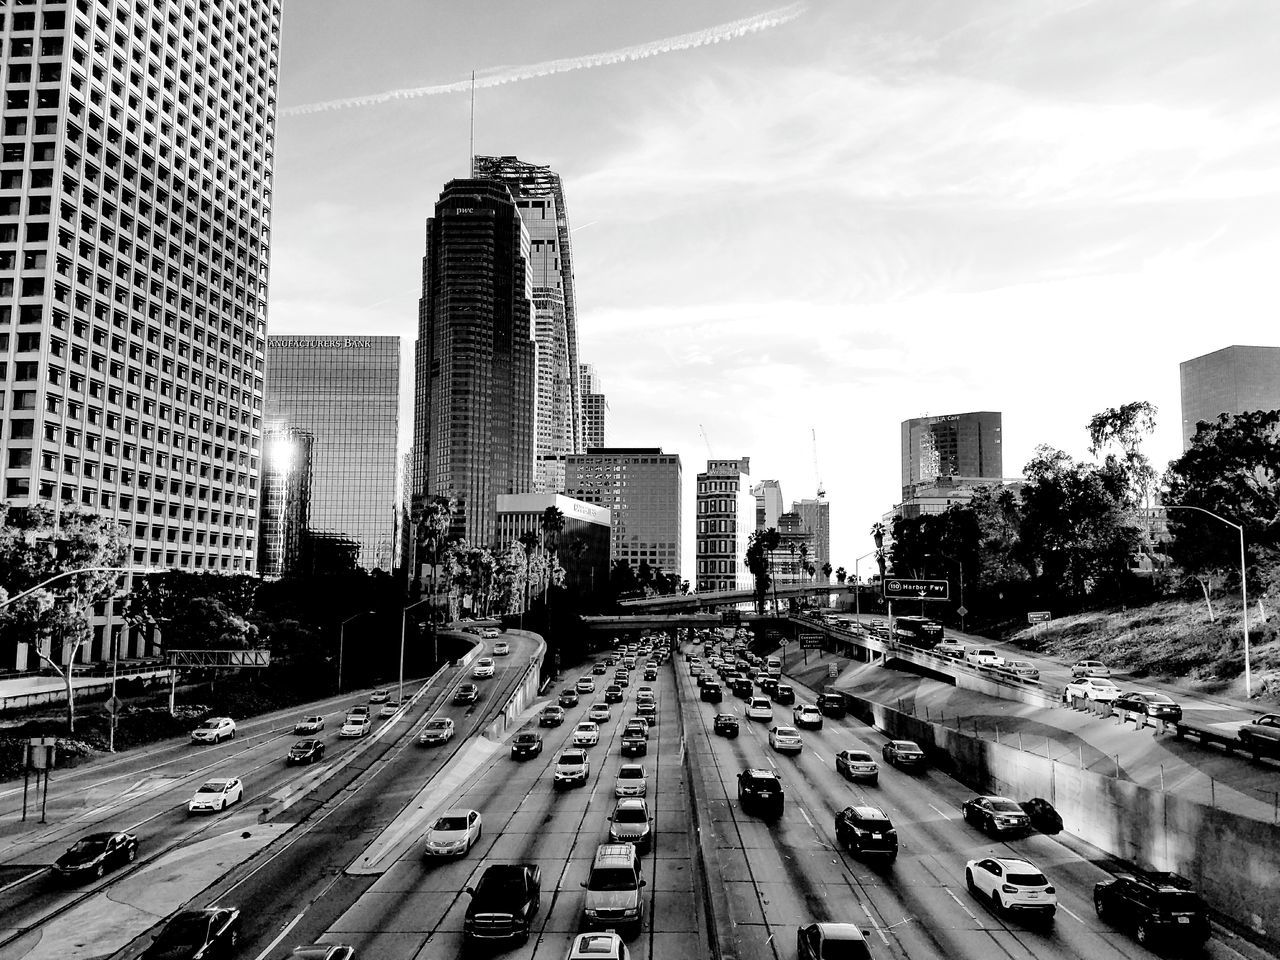 city, transportation, skyscraper, architecture, land vehicle, building exterior, built structure, road, car, street, mode of transport, city life, tall, outdoors, sky, day, urban skyline, modern, cityscape, tree, no people